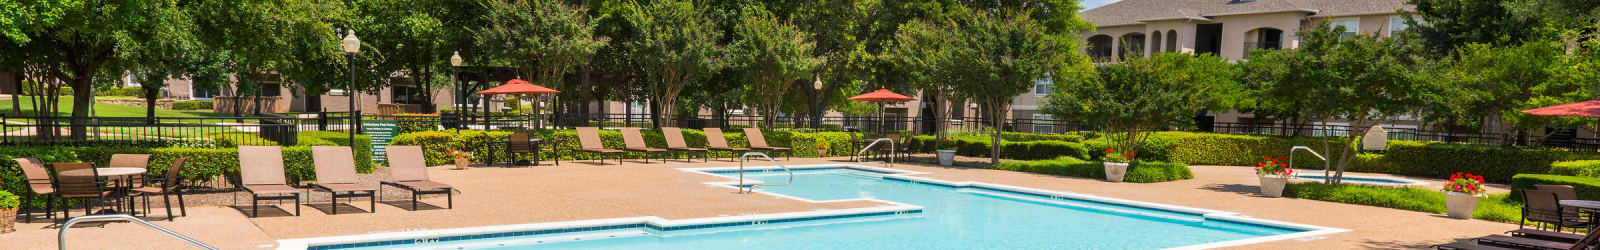 Guest suites at Ballantyne Apartments in Lewisville, Texas